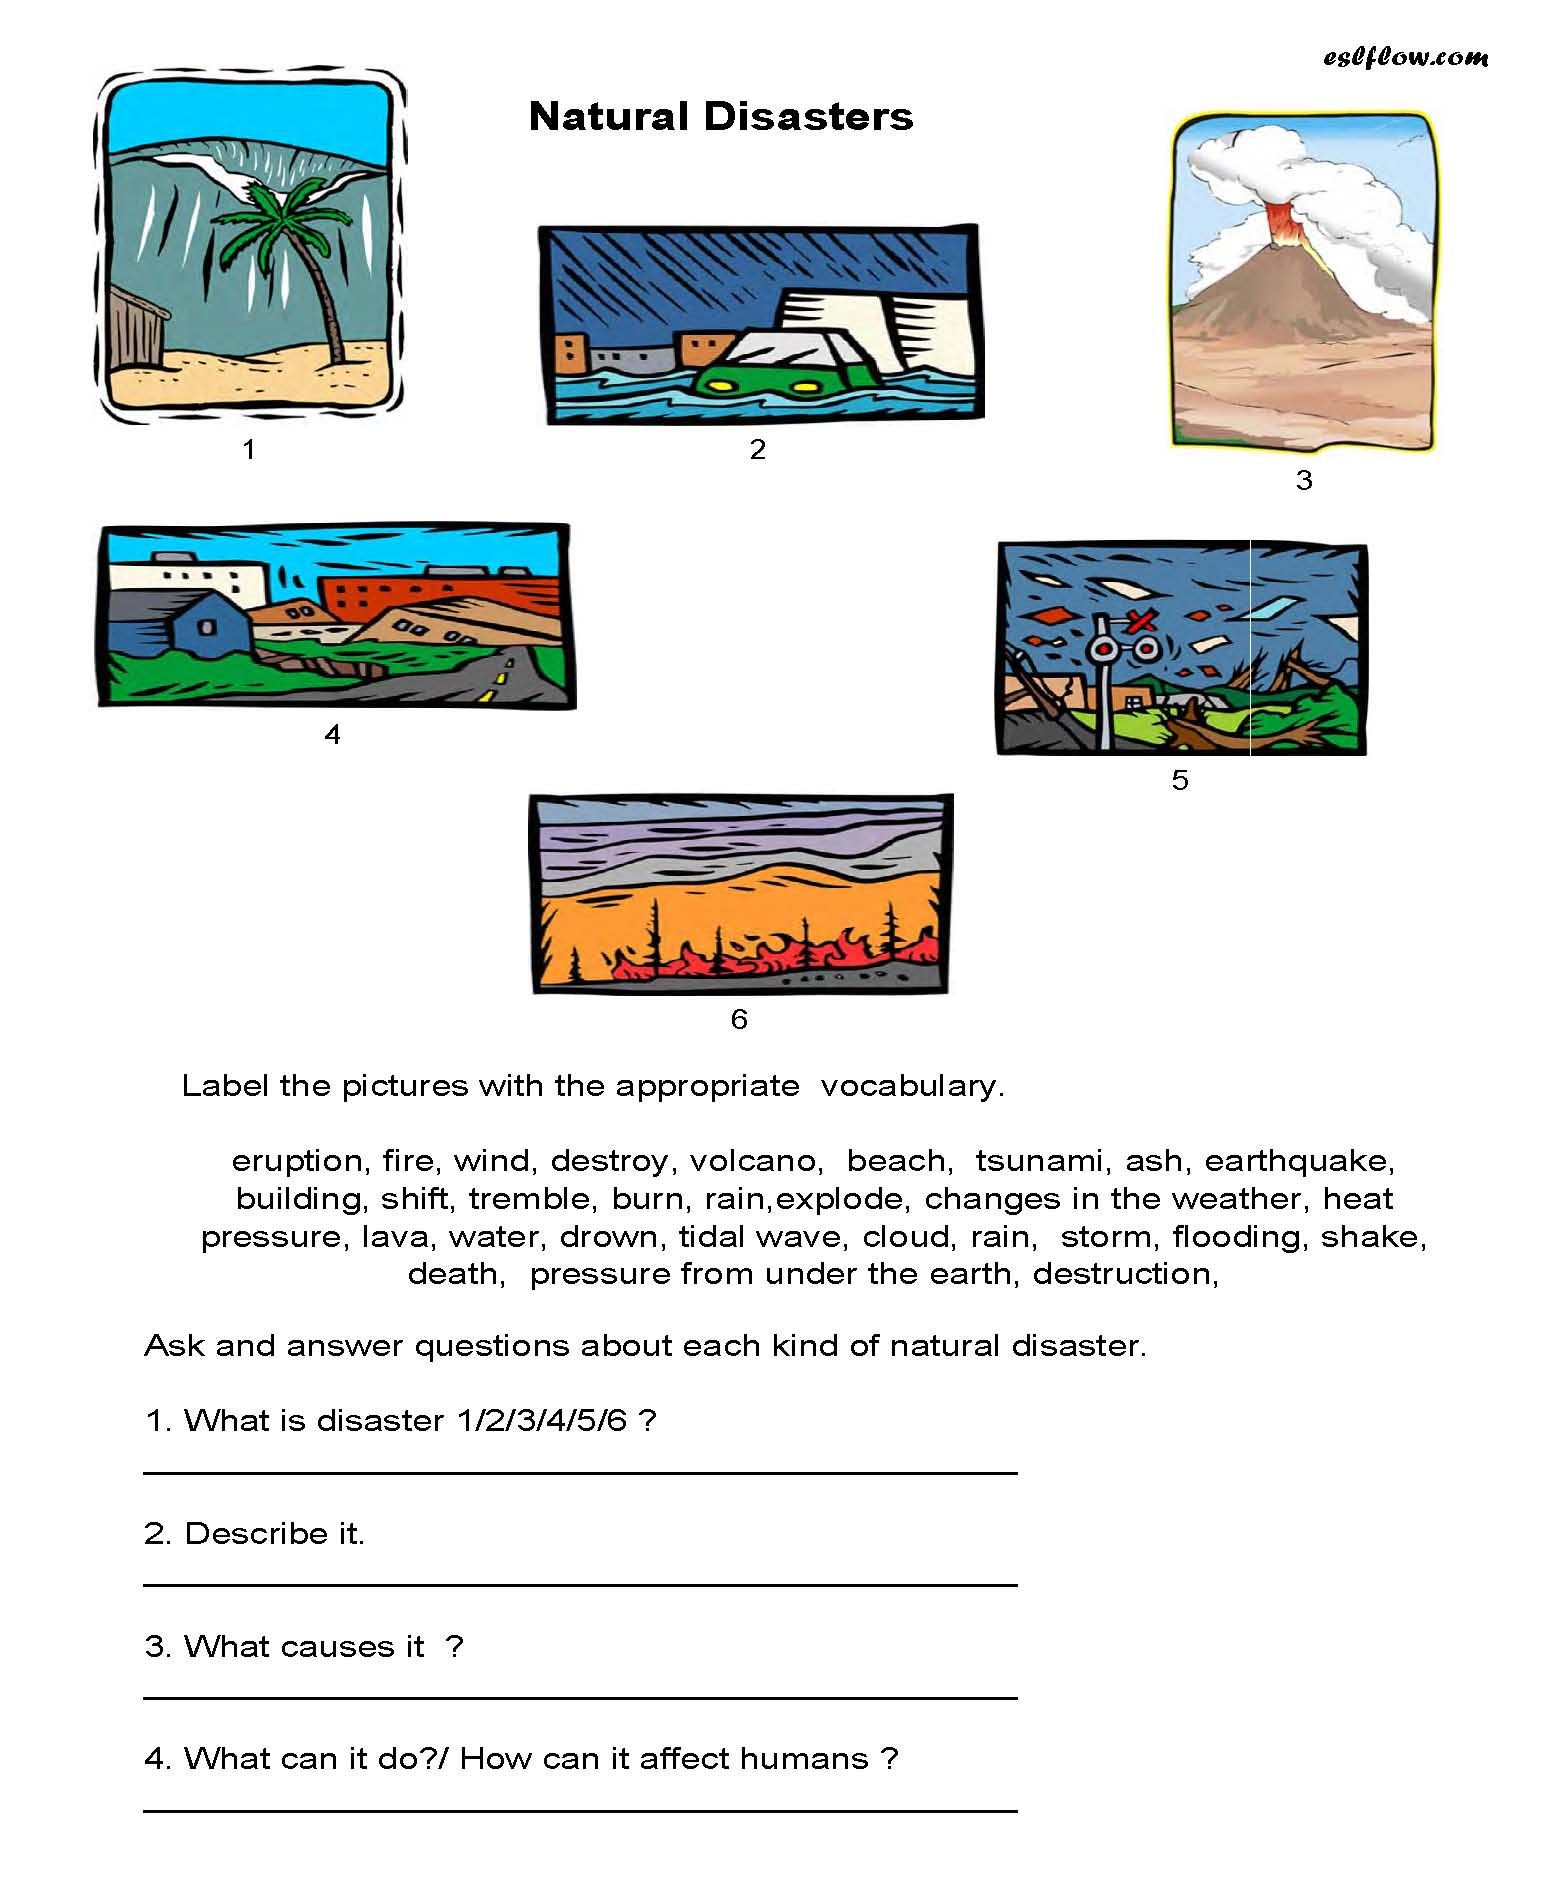 Natural Disasters Vocabulary Speaking Activity